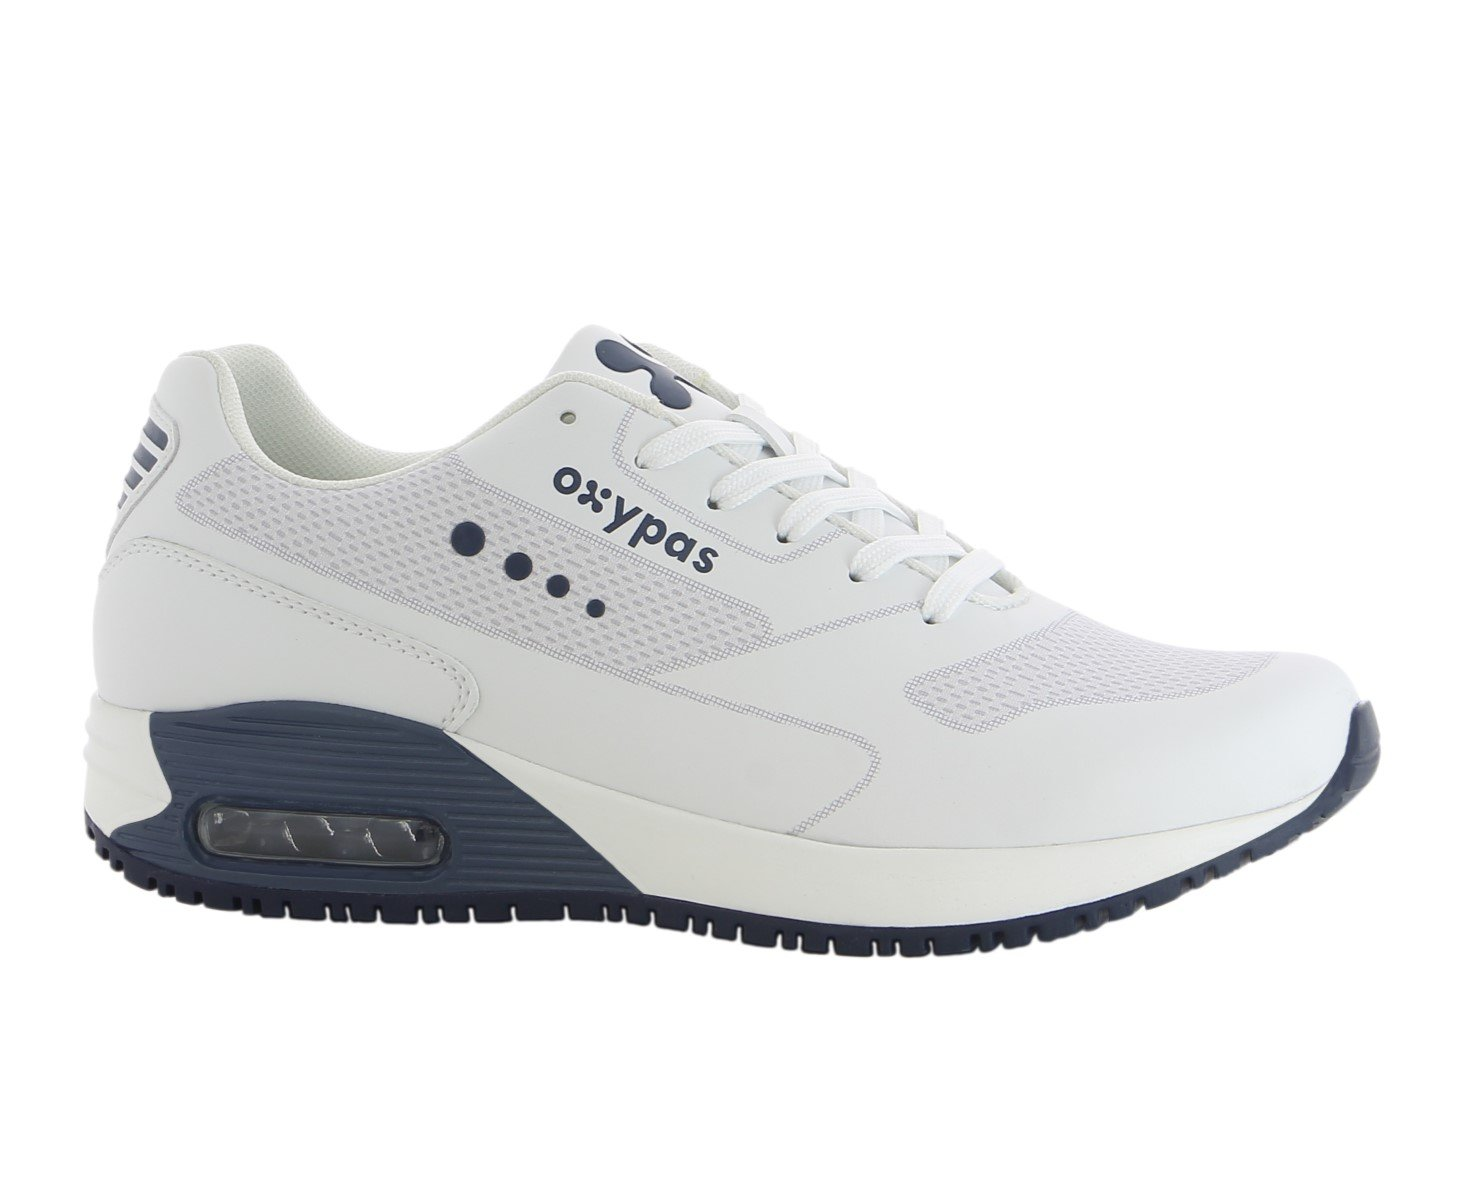 Oxypas JamesS4601blk James Sra Working Shoe With Coolmax Lining